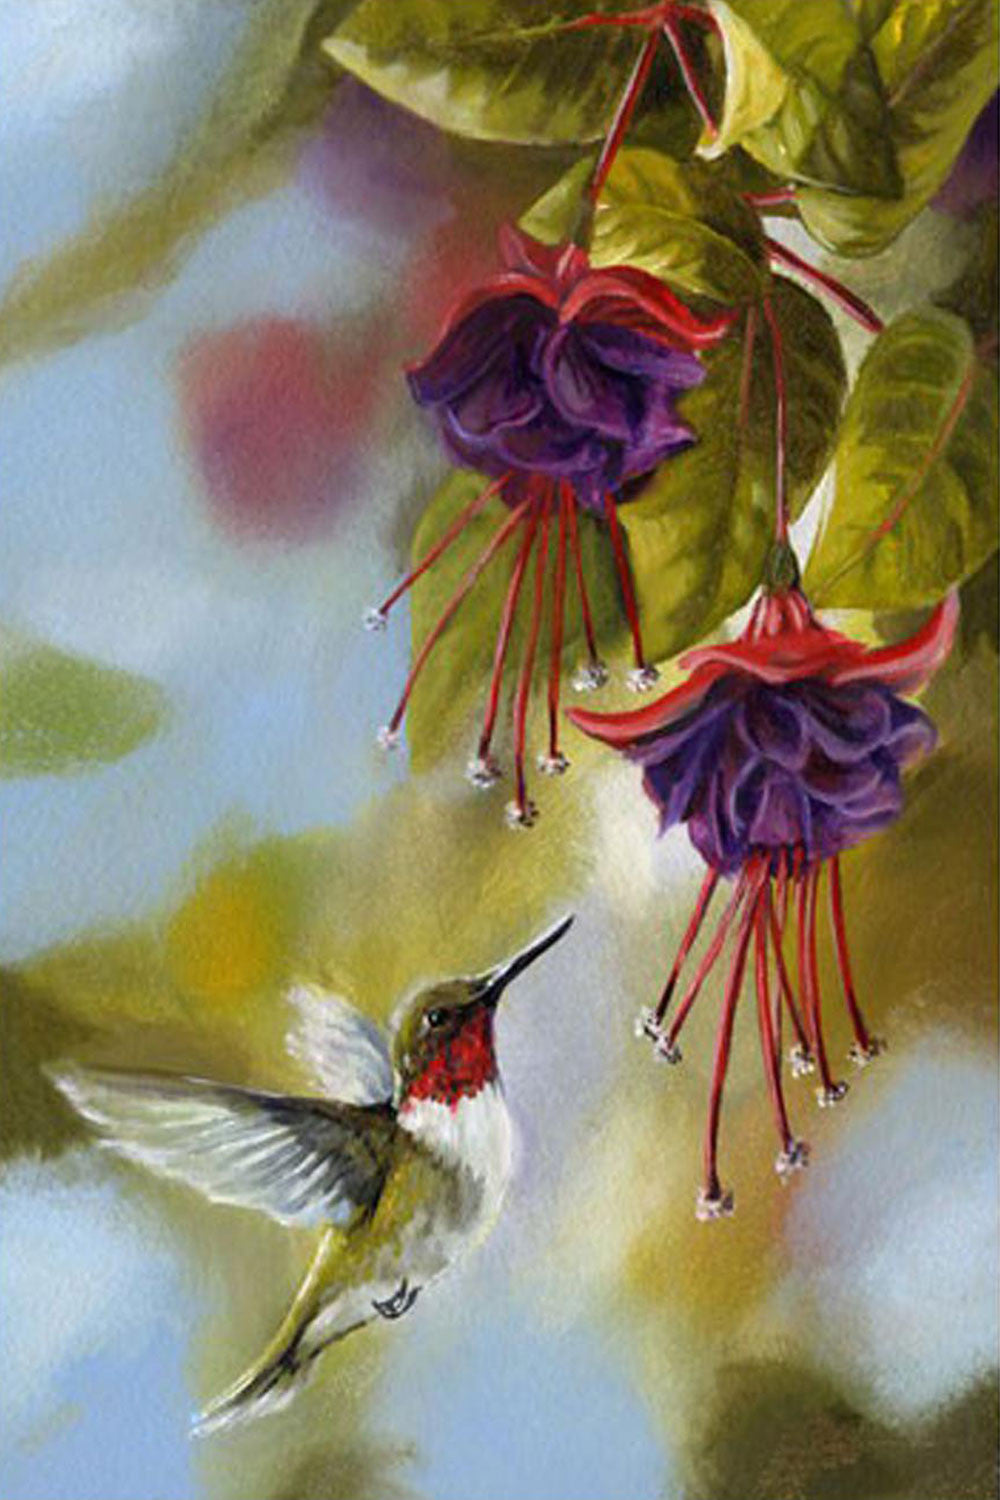 Hummingbirds and Fuchsias Garden Flag - We Love Hummingbirds